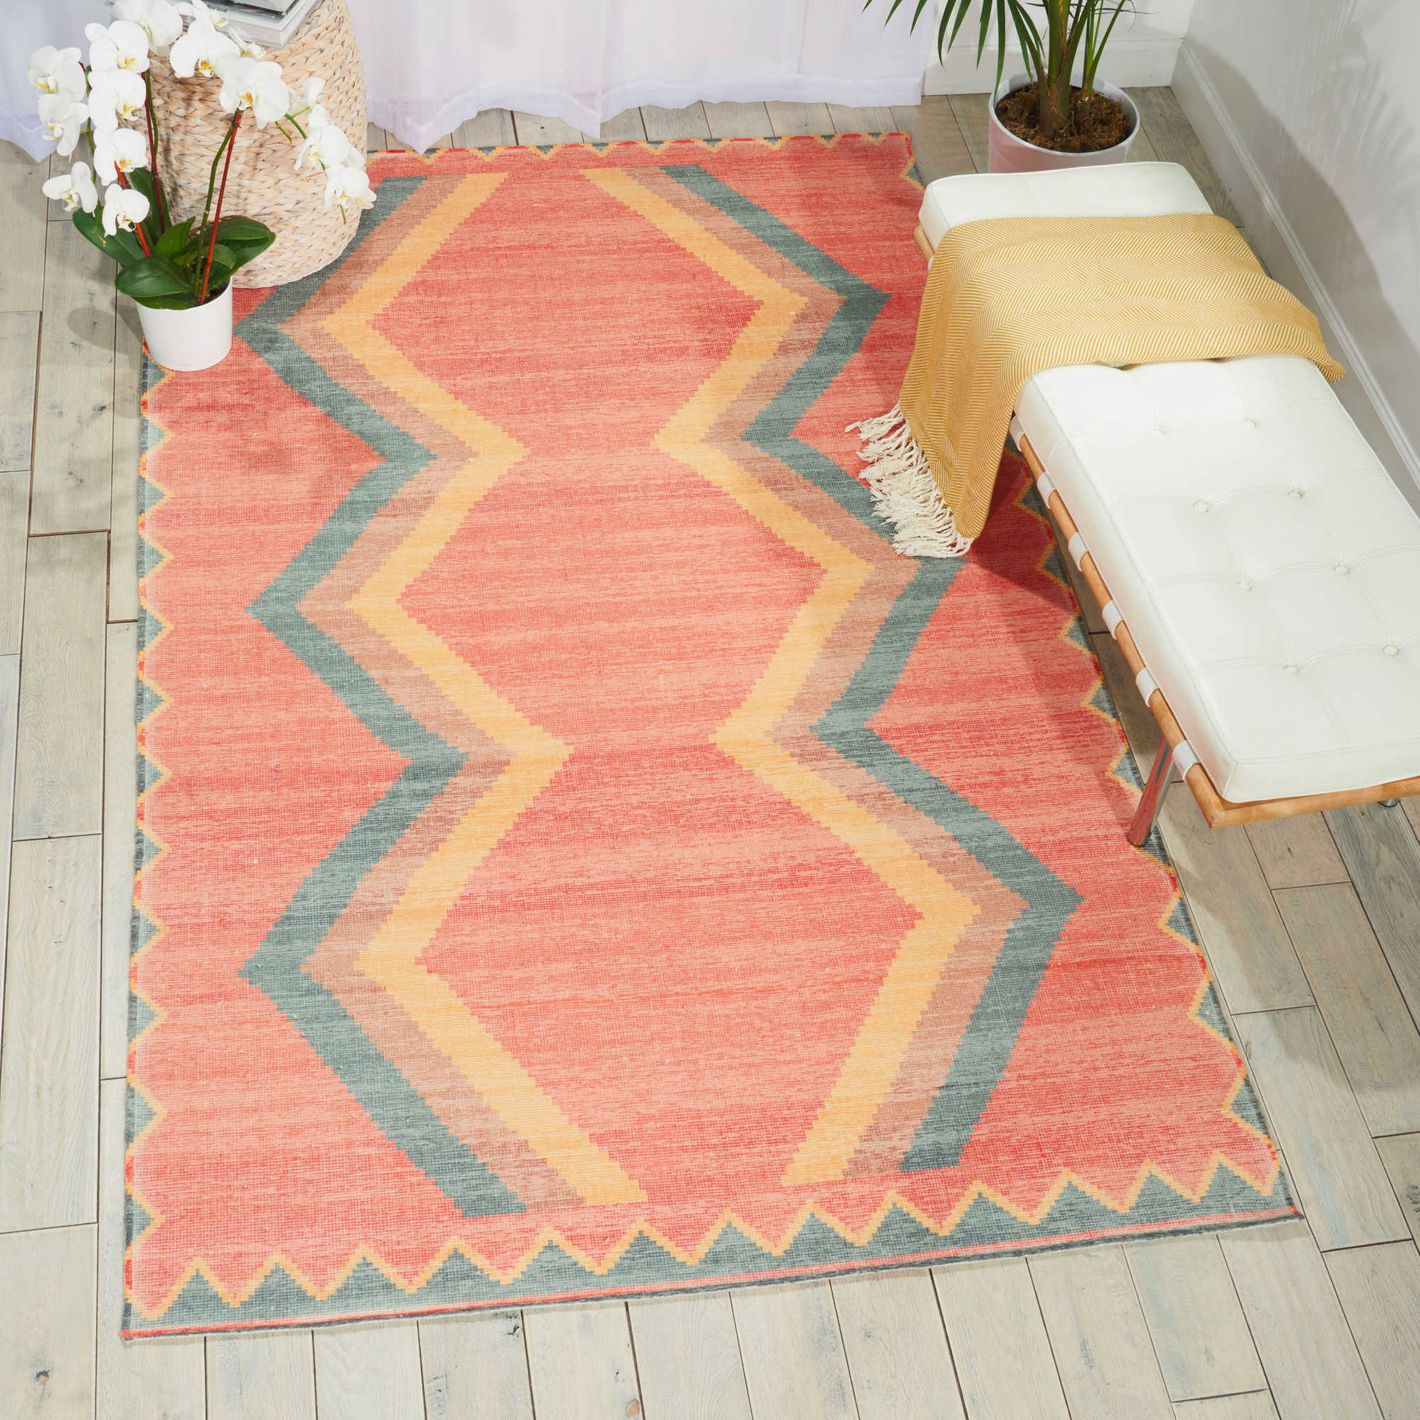 Nourison Madera Woven Area Rug in Tangerine